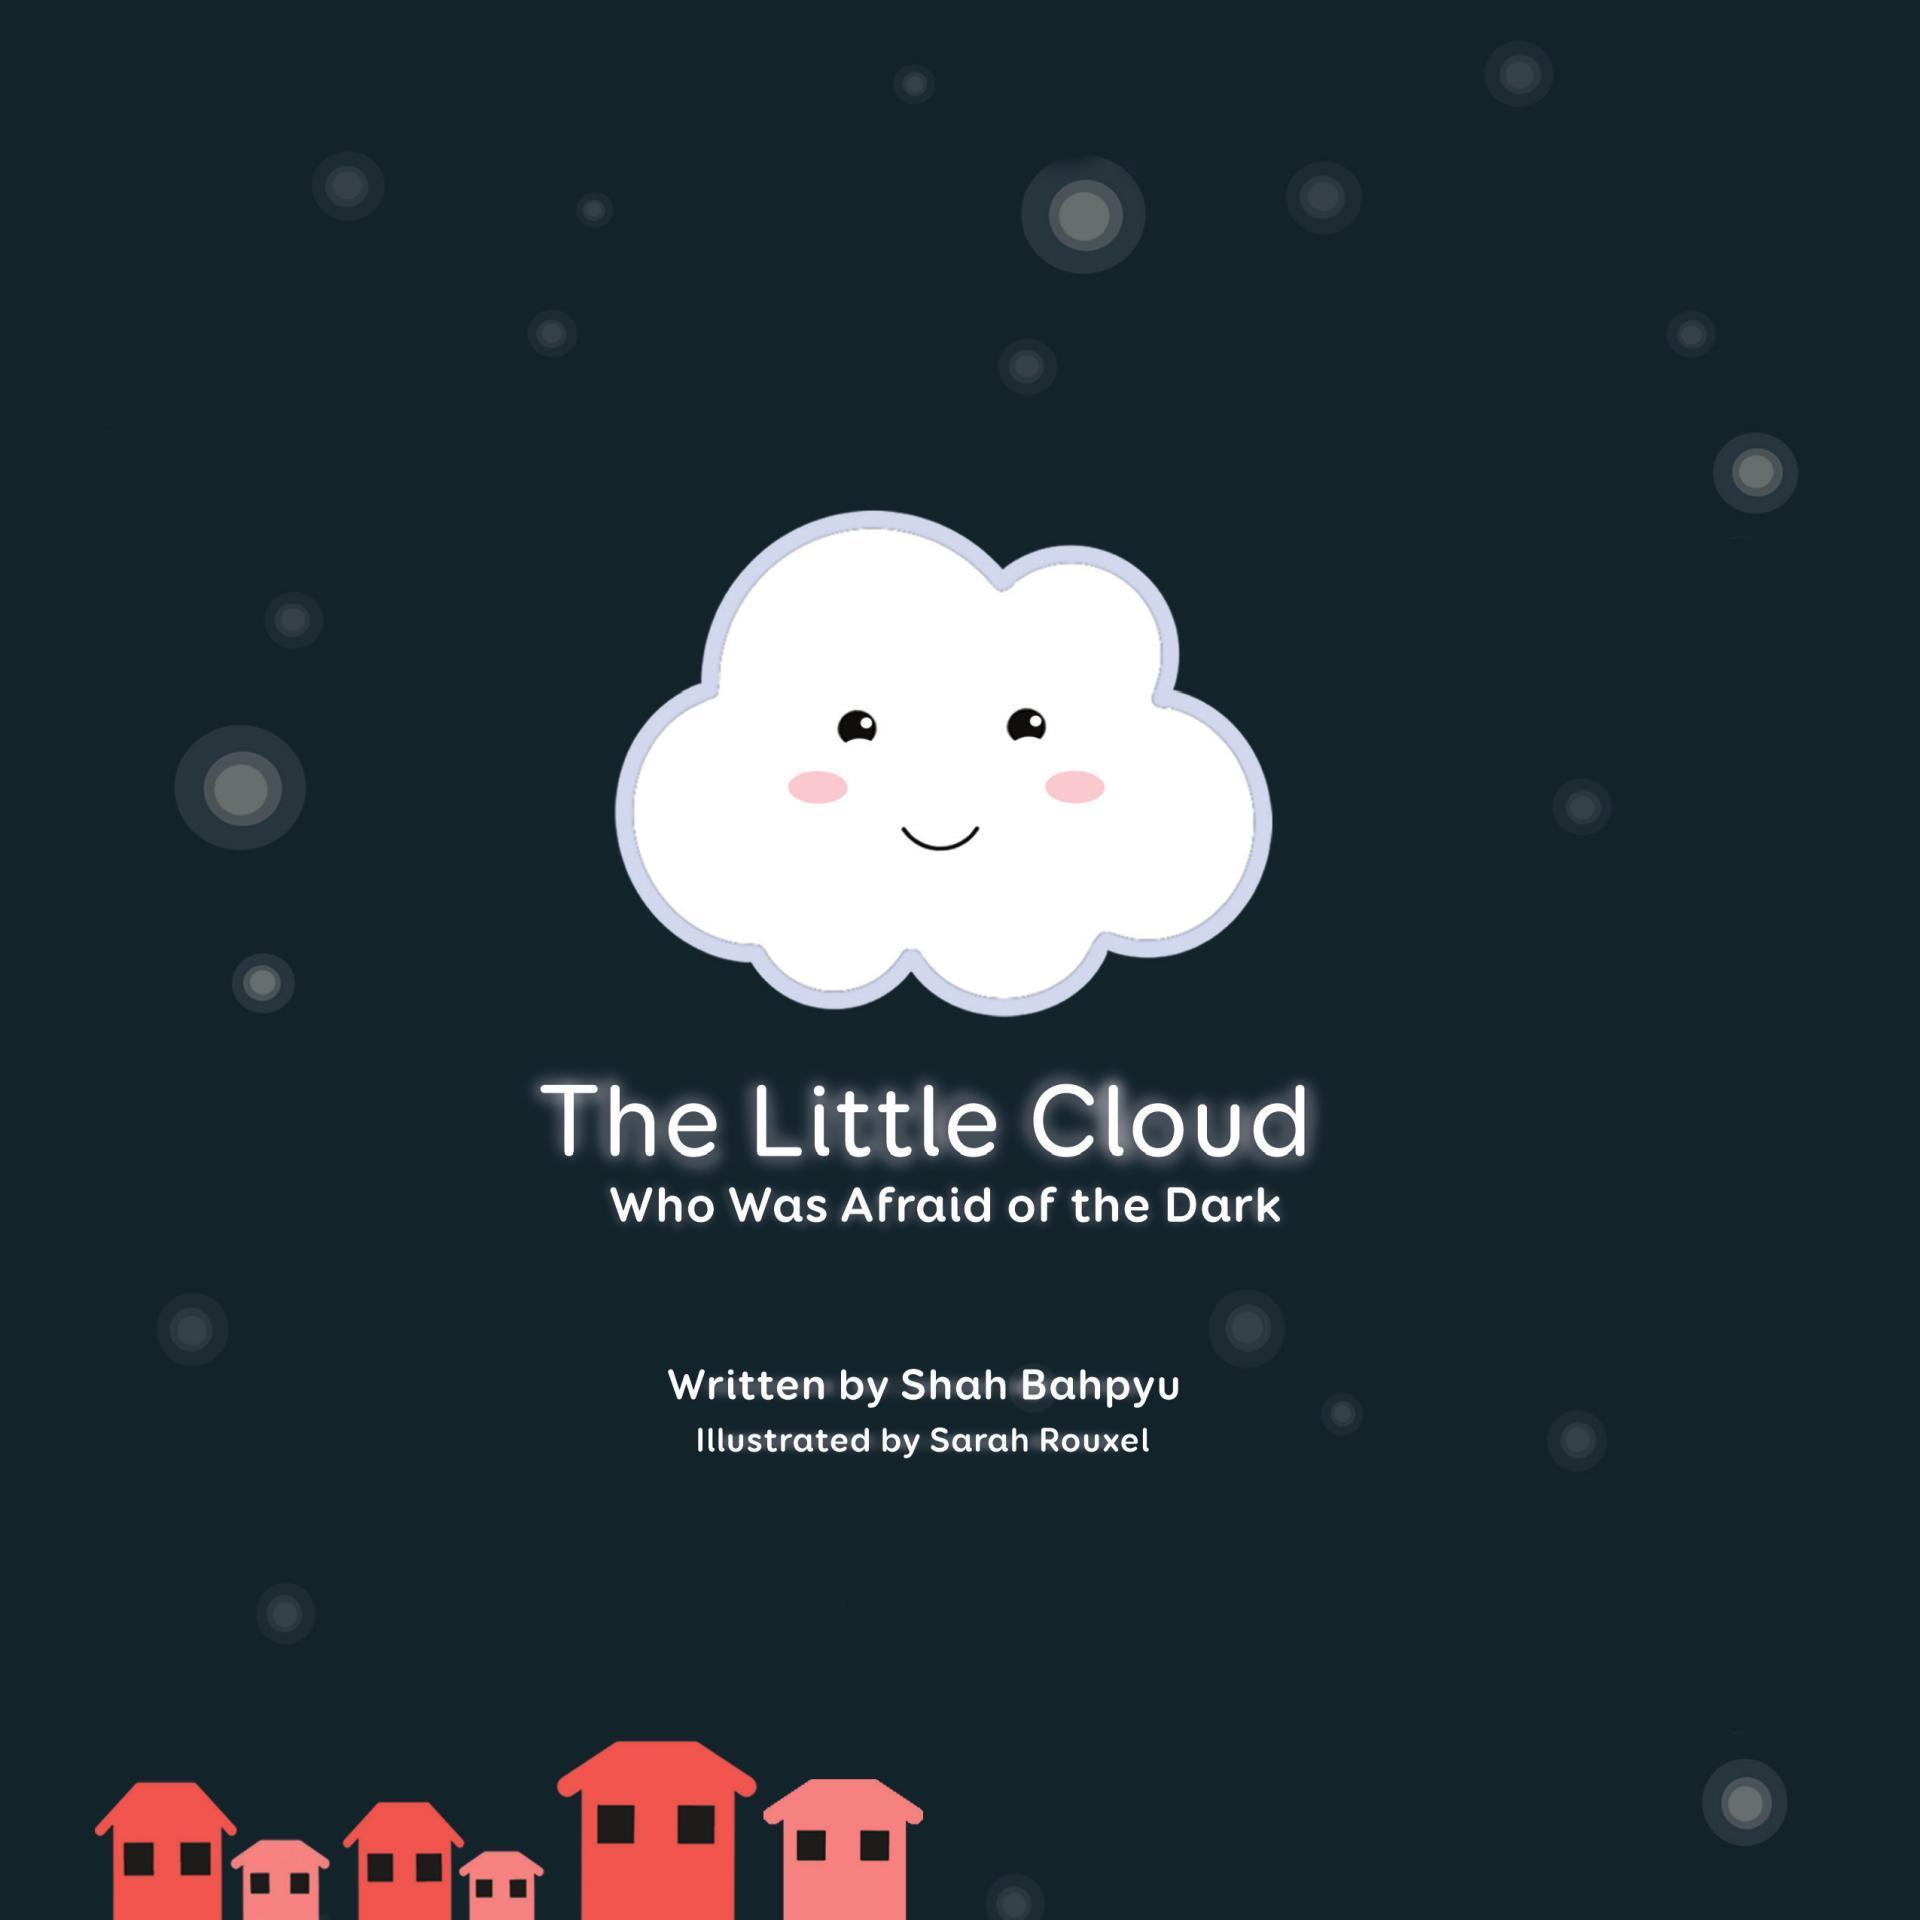 The Little Cloud Who Was Afraid of the Dark